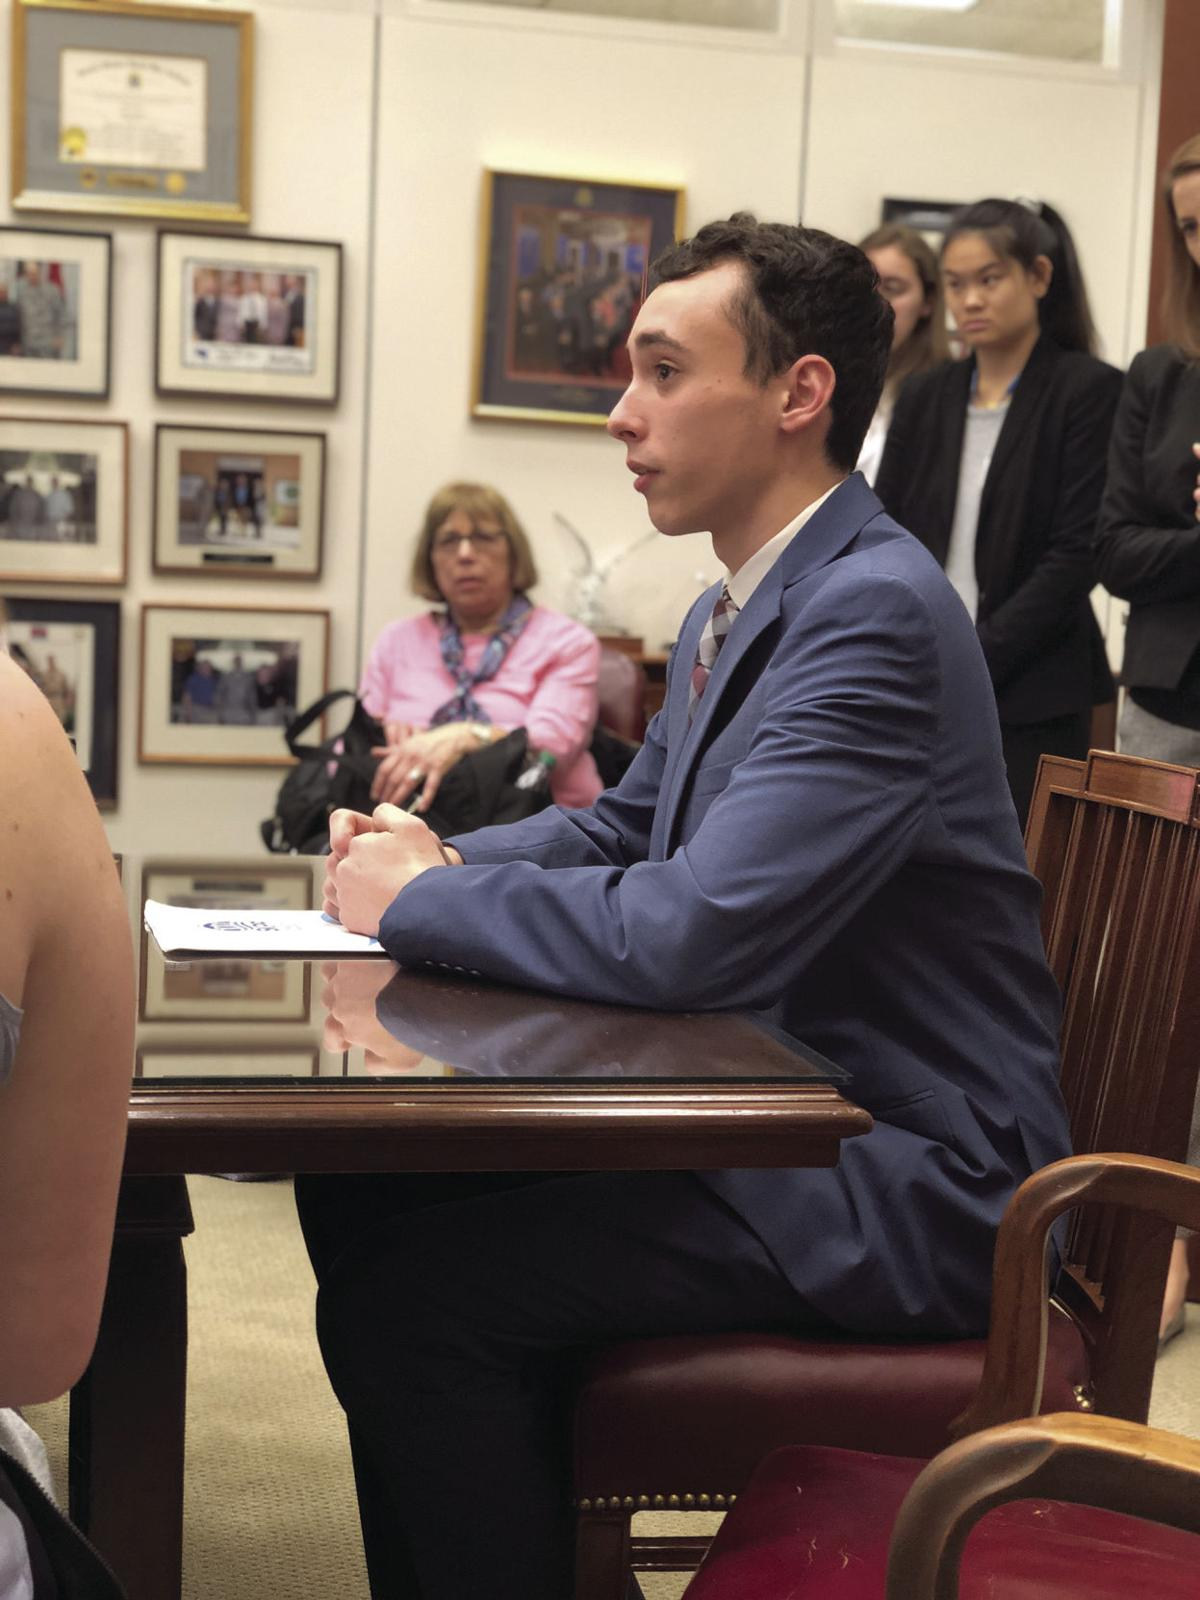 South Kingstown students meet with congressional delegation in D.C.